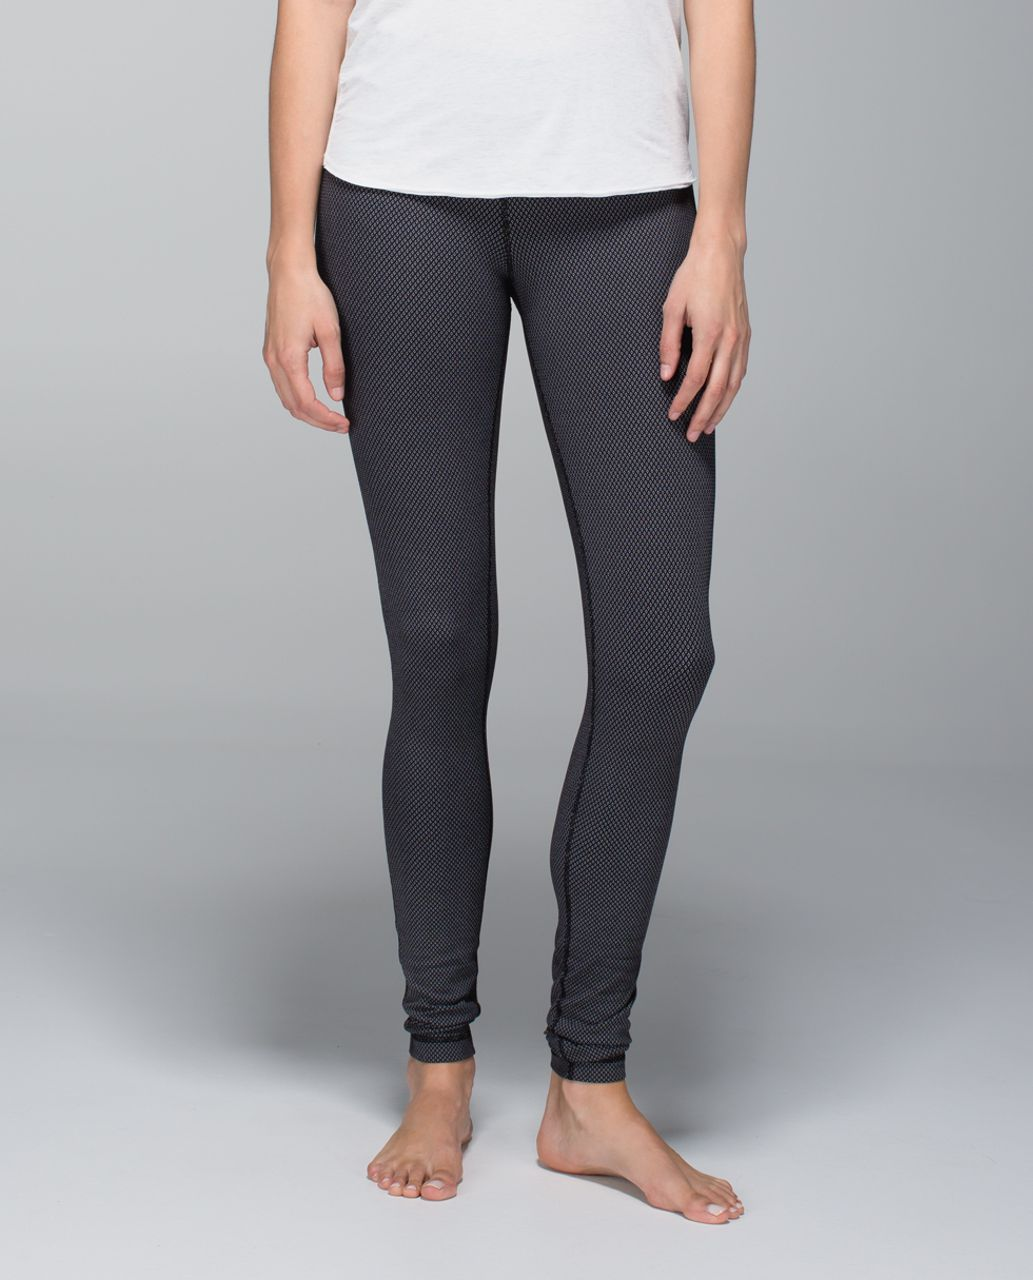 Lululemon Wunder Groove Pant - Diamond Dot Black White / Black